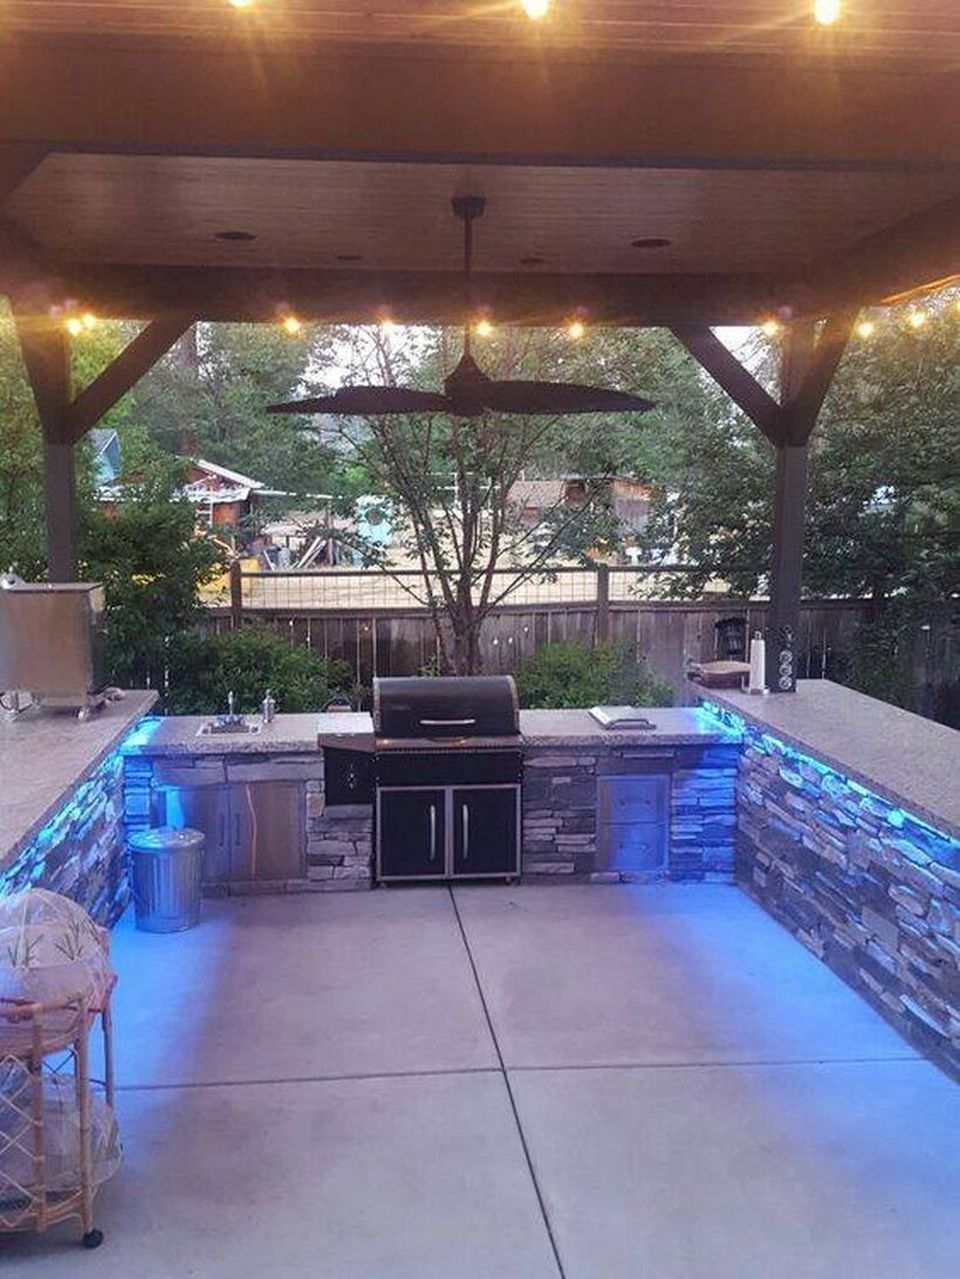 Awesome yard and outdoor kitchen design ideas covered patio